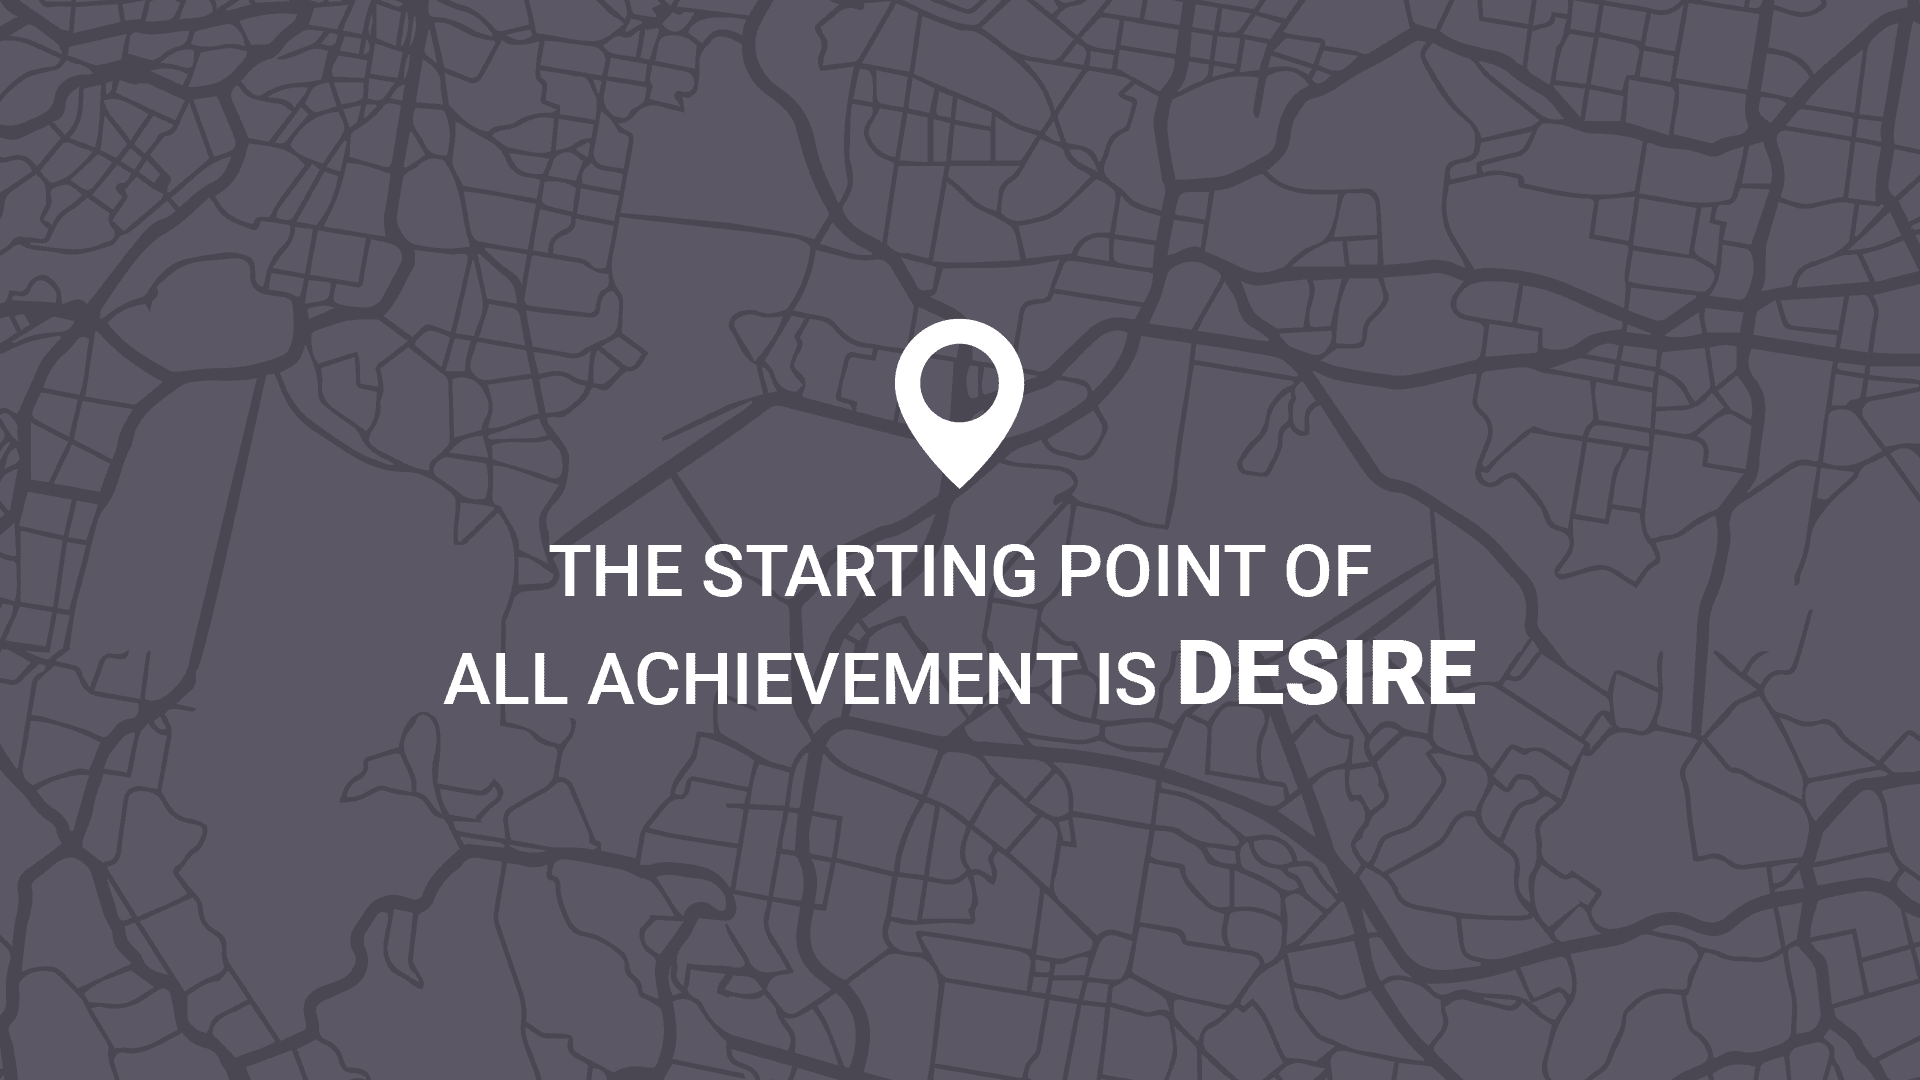 The starting point of all achievement is DESIRE